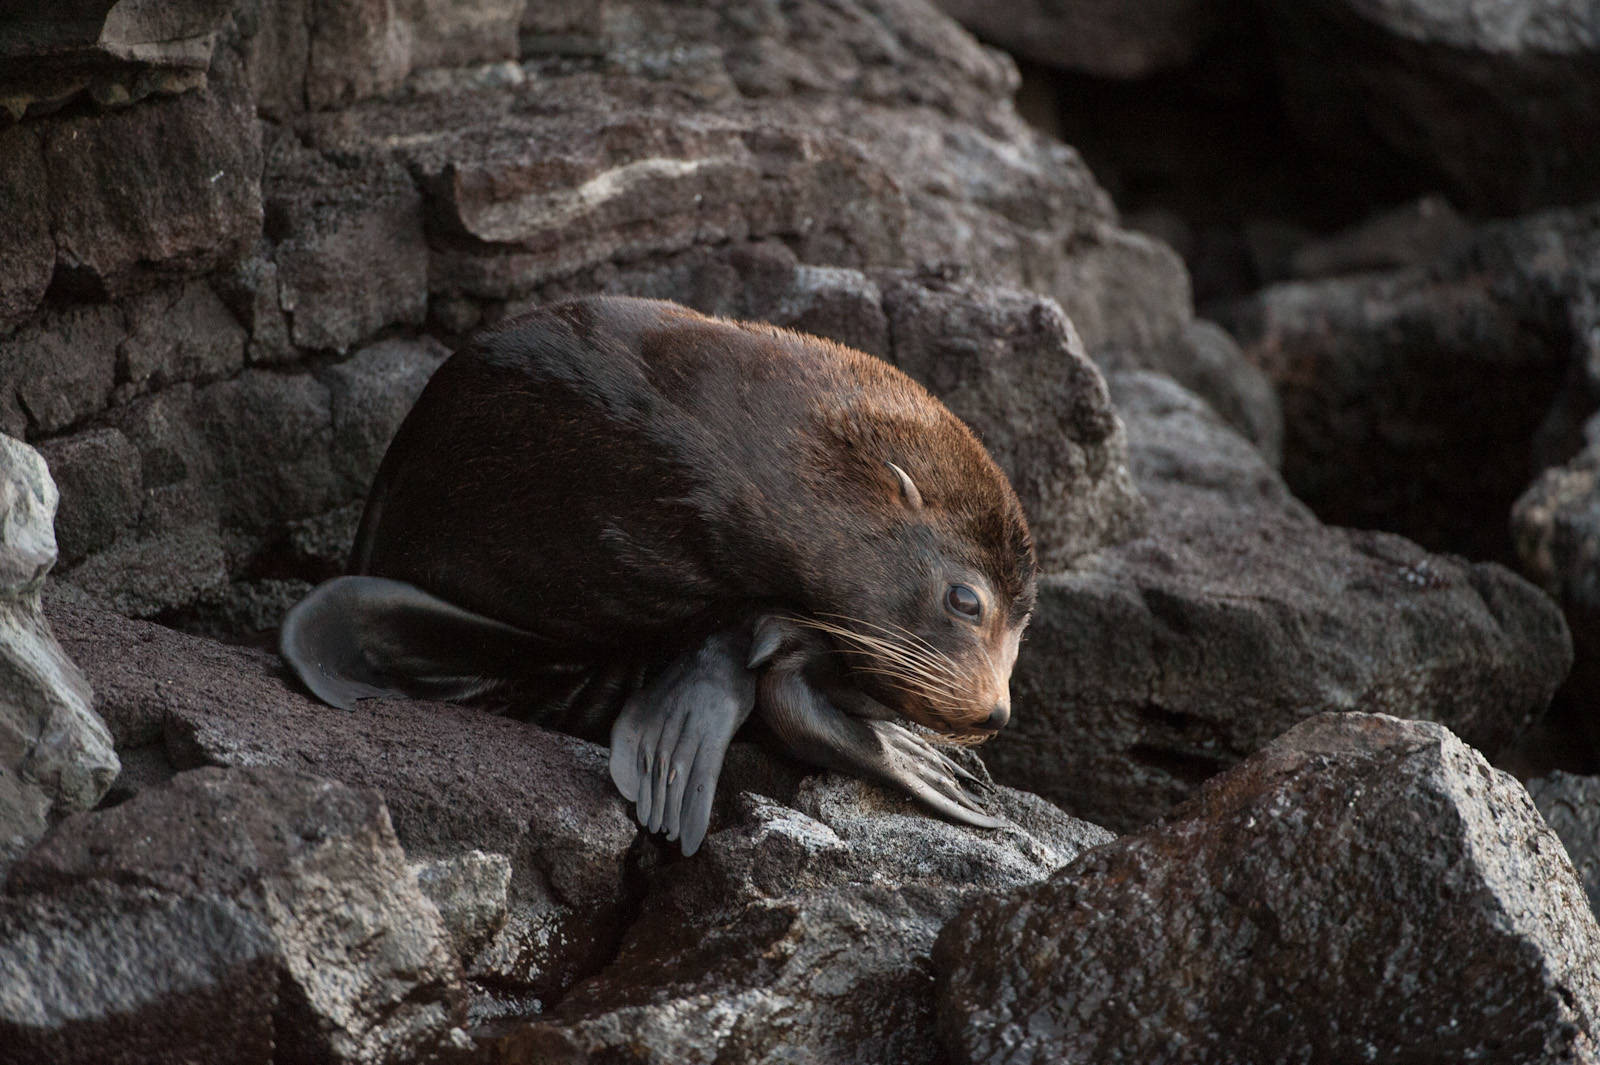 Photo: A Galapagos fur seal (Arctocephalus galapagoensis) on Tower Island in Galapagos National Park.